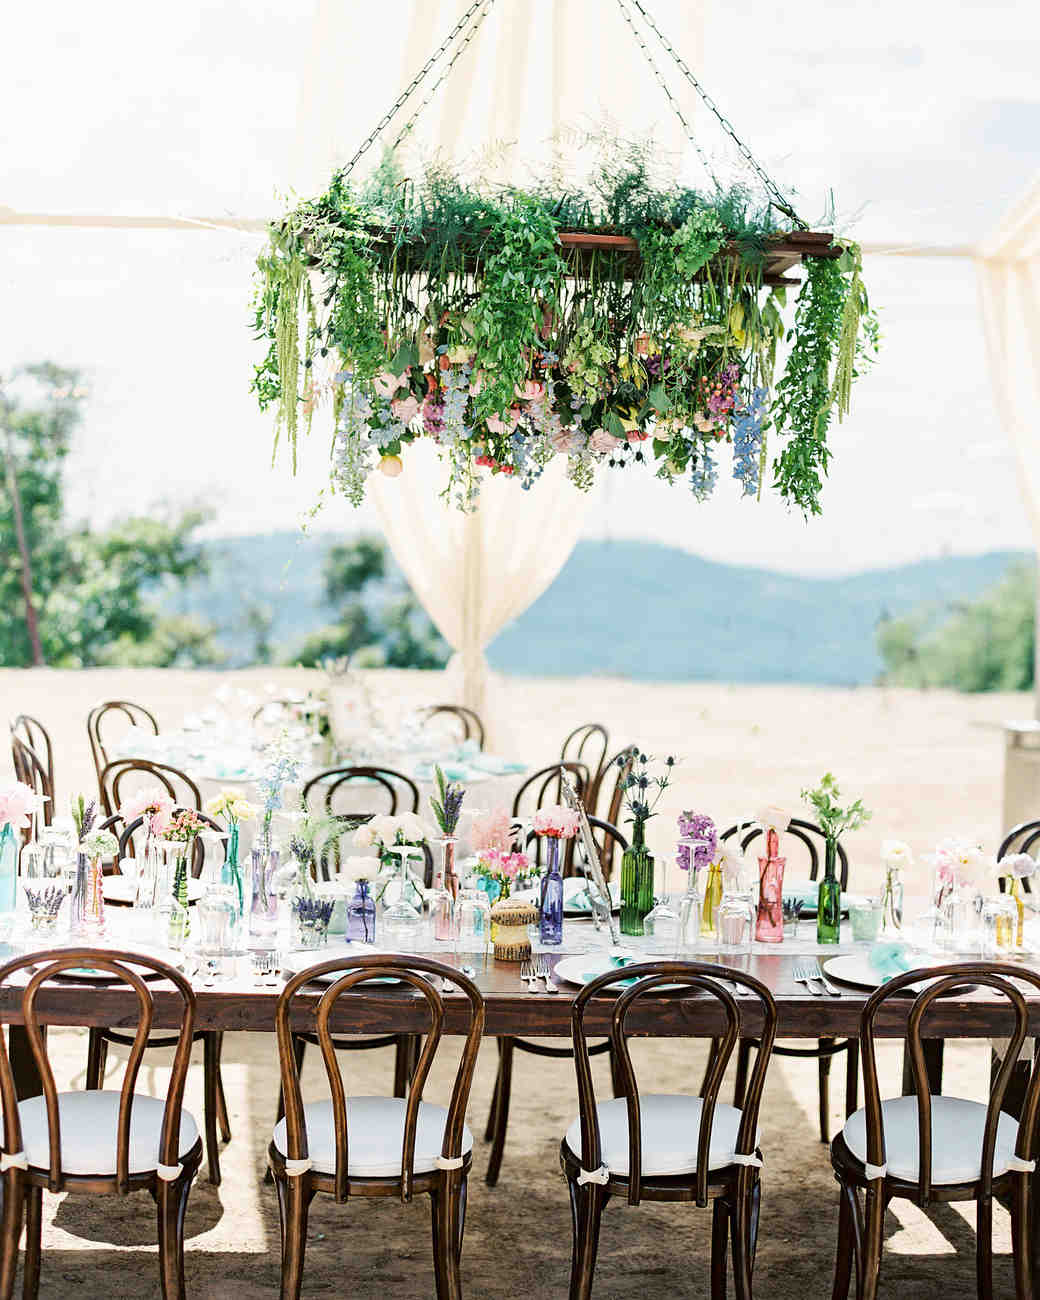 the colorful glass bottles on this dreamy tablescape were matched perfectly to the flowers hanging above